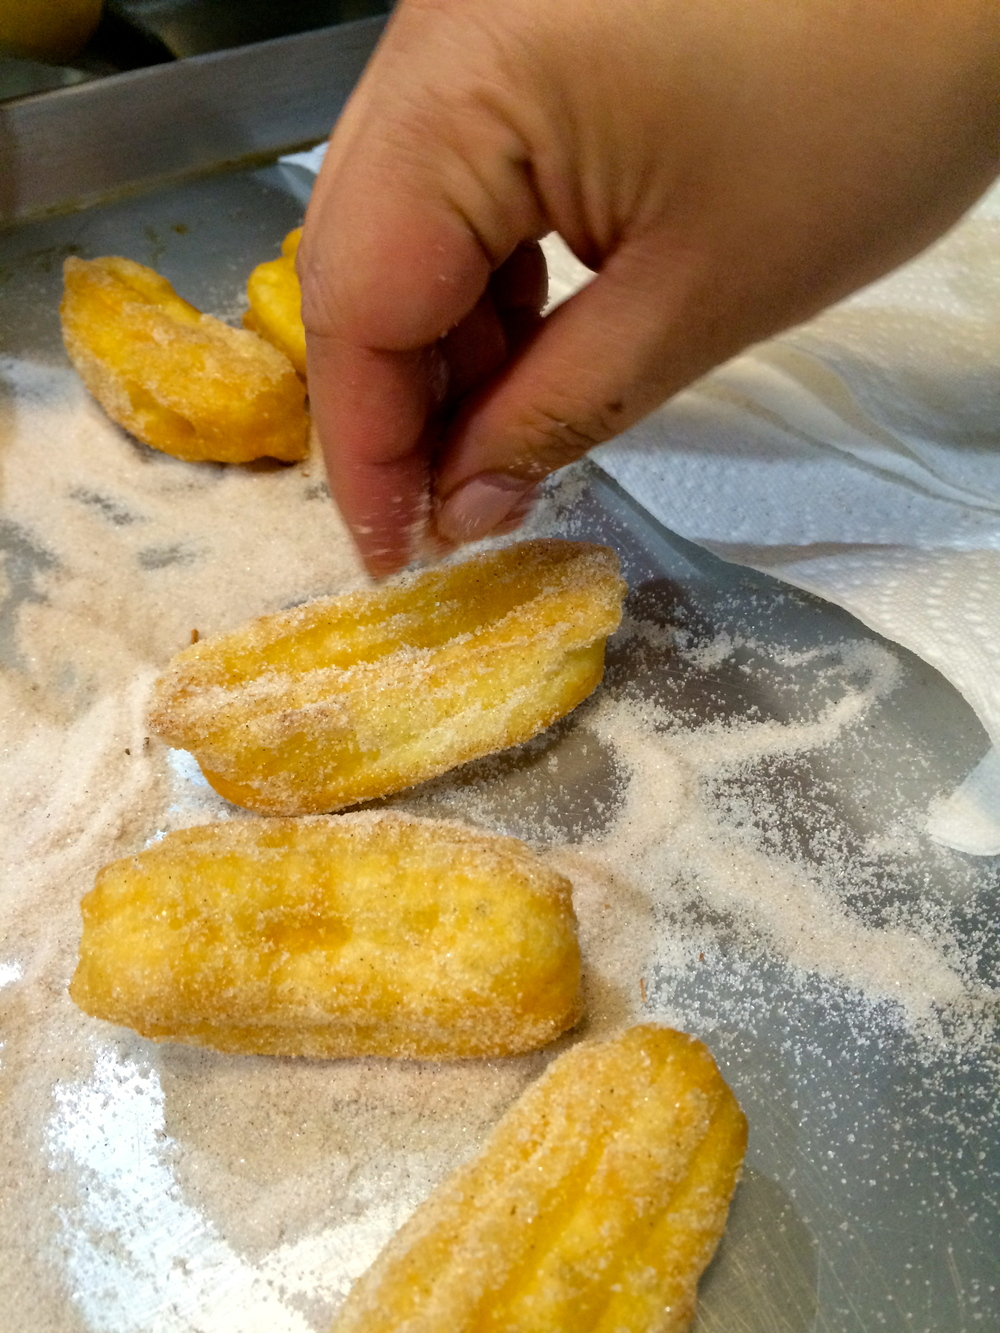 Churros sprinkled with cinnamon sugar.